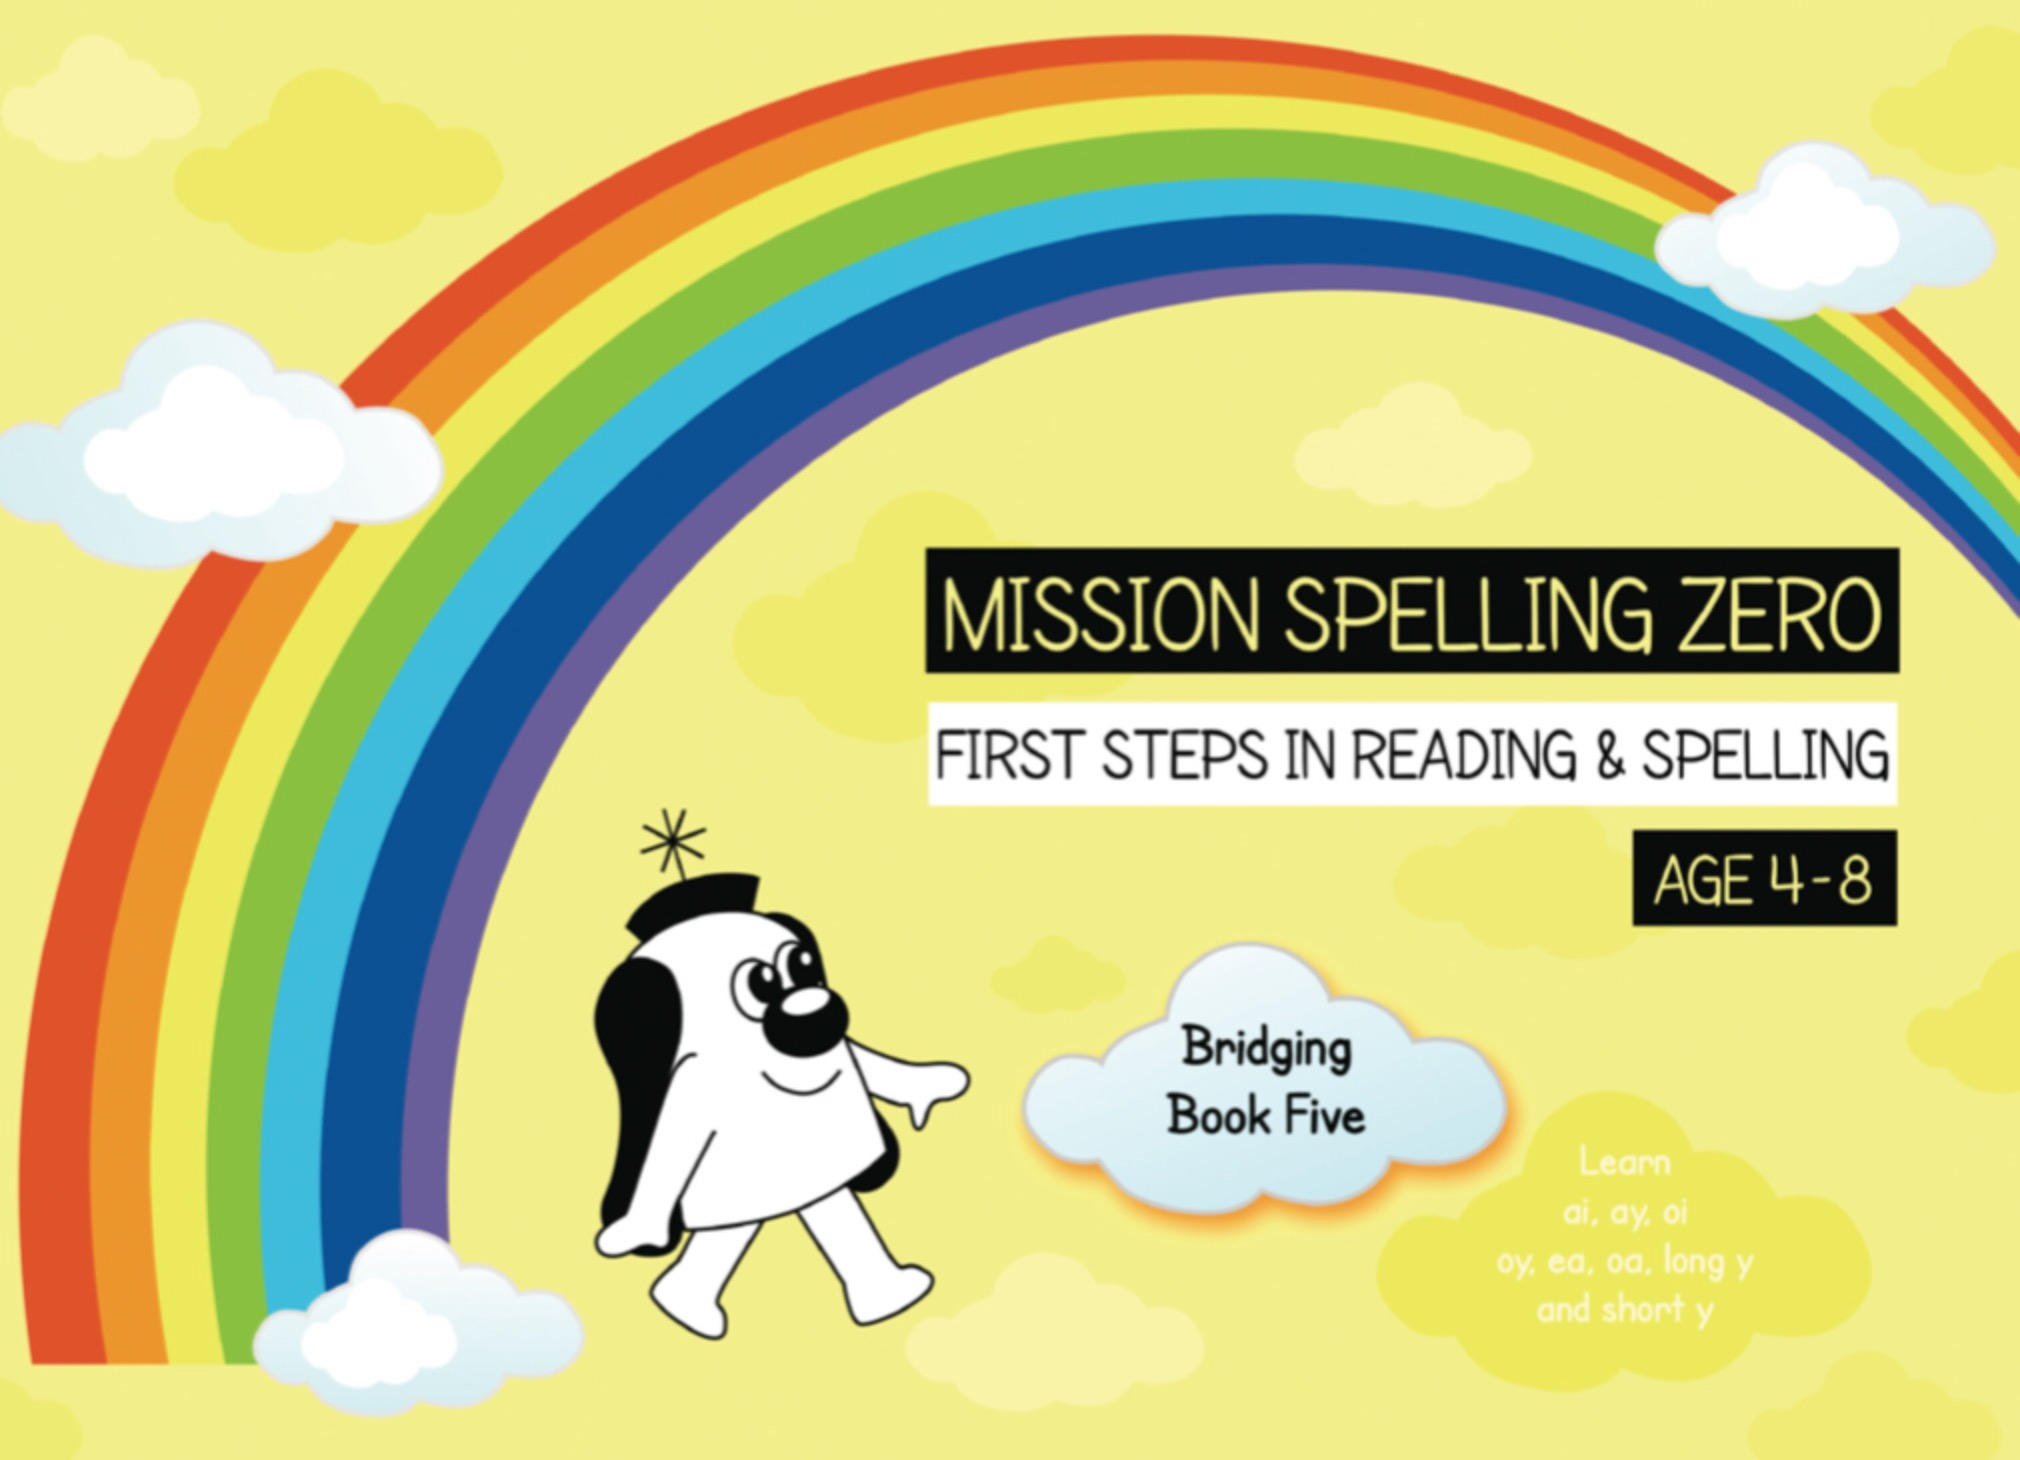 Phonics And Spelling Practice: Learn Vowel Groups oa, ai, ay, oi